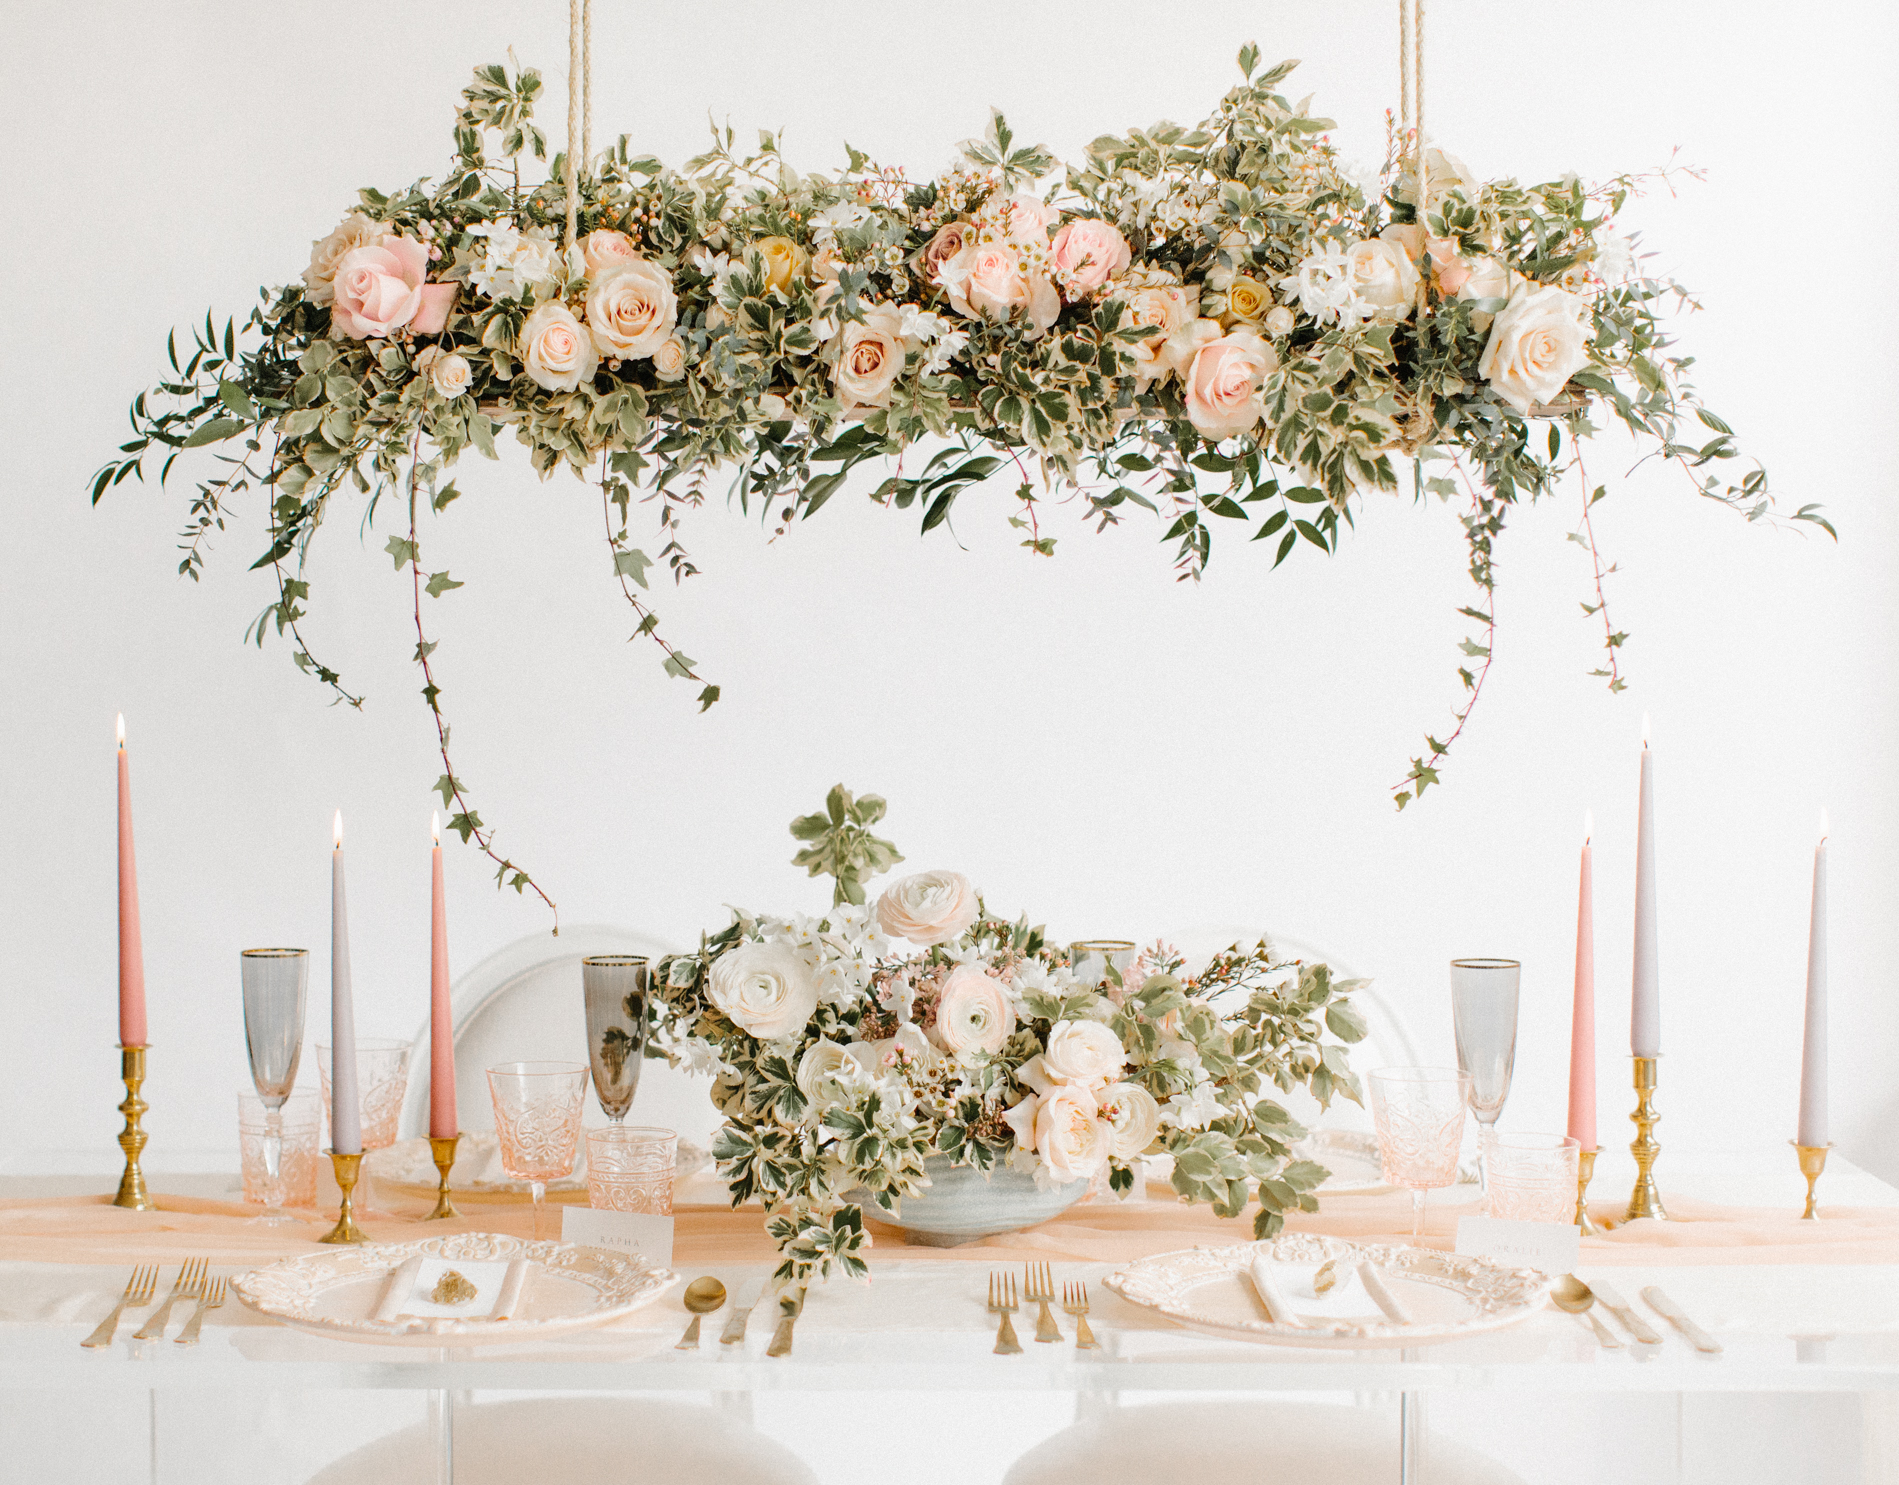 Tips For Planning Your Wedding With Pinterest Without